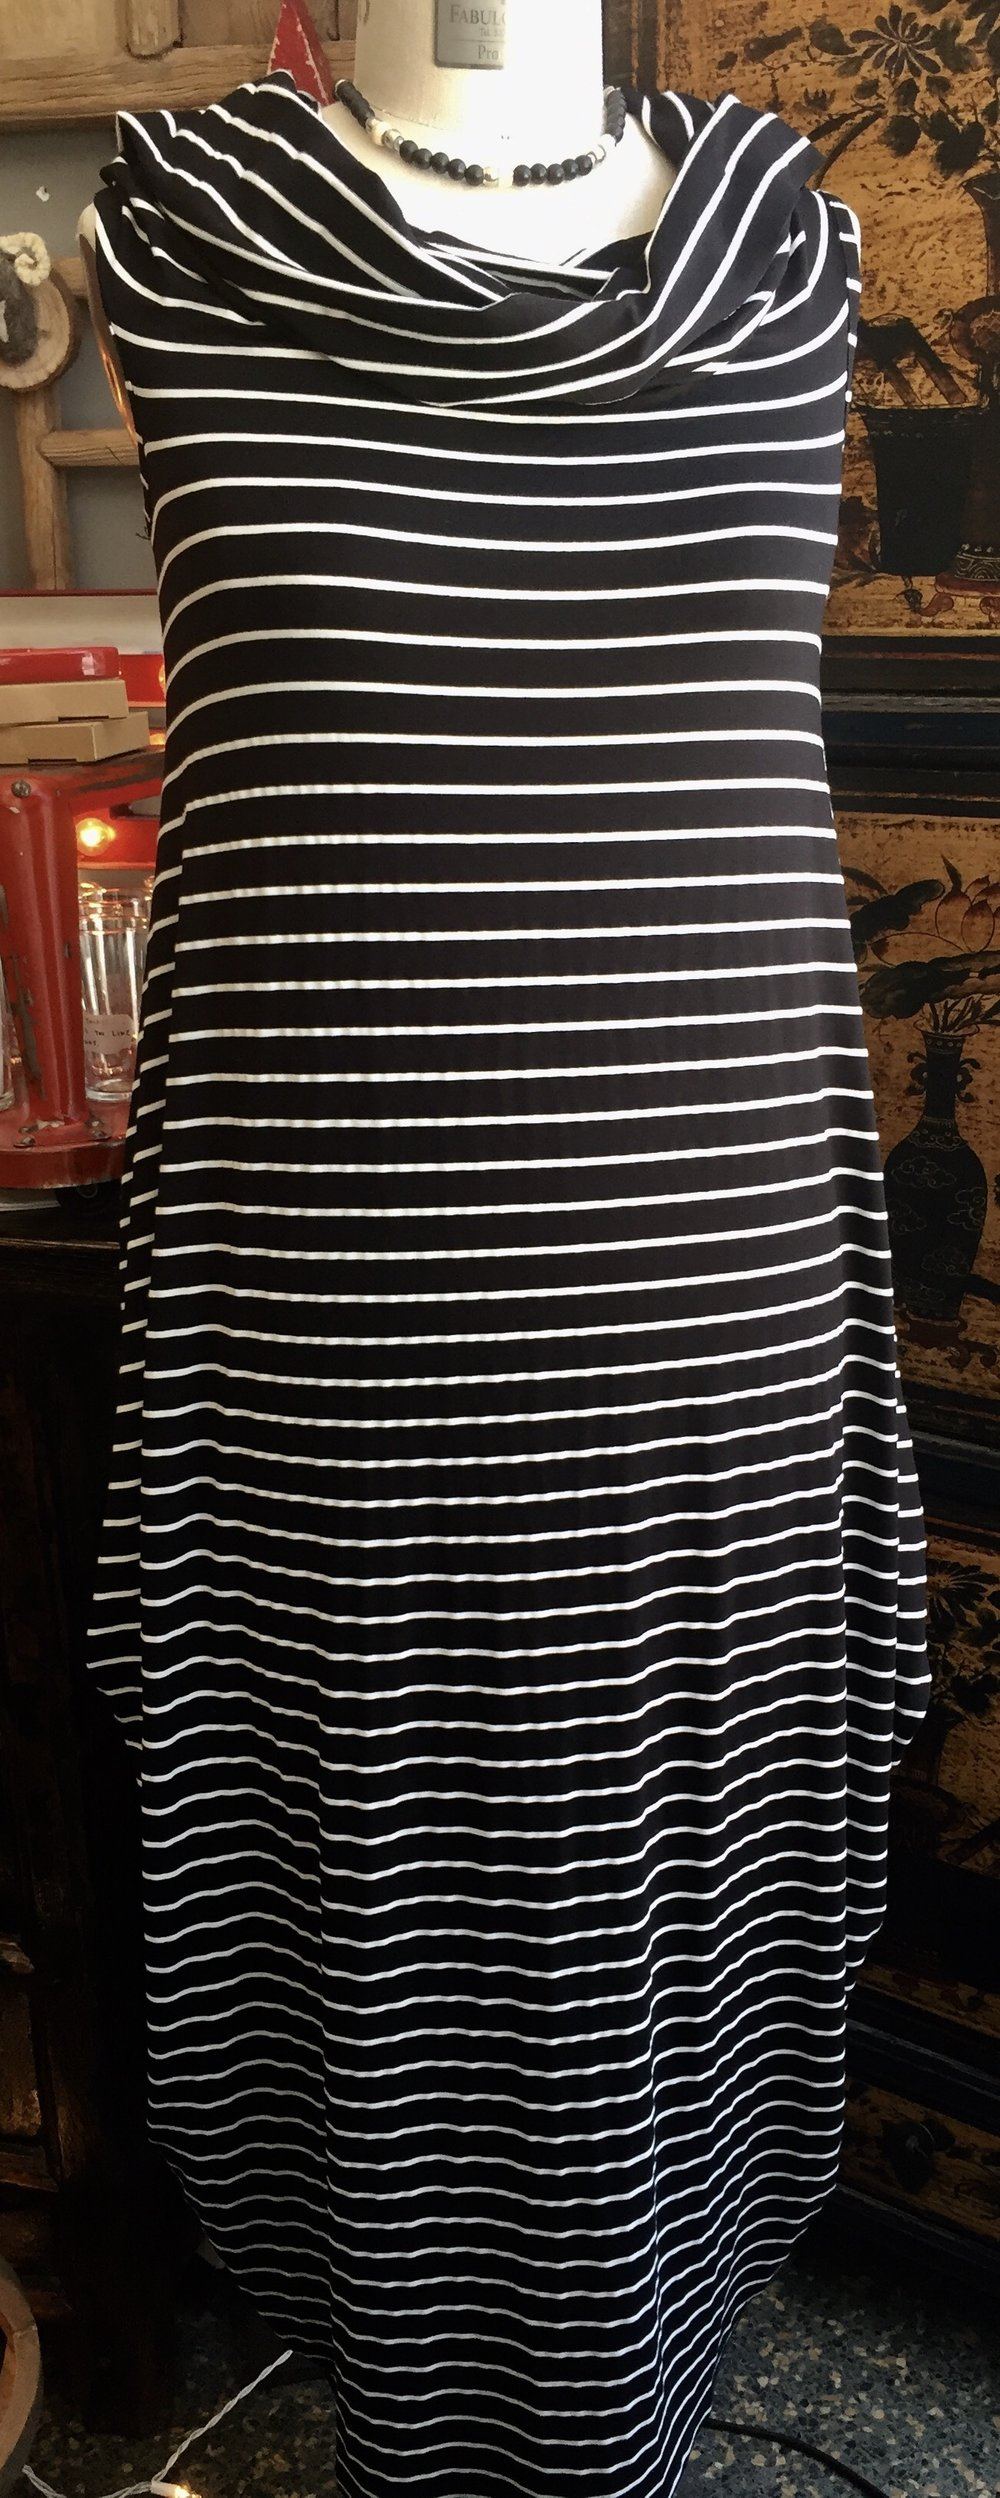 FullSizeRender copy 2.jpg